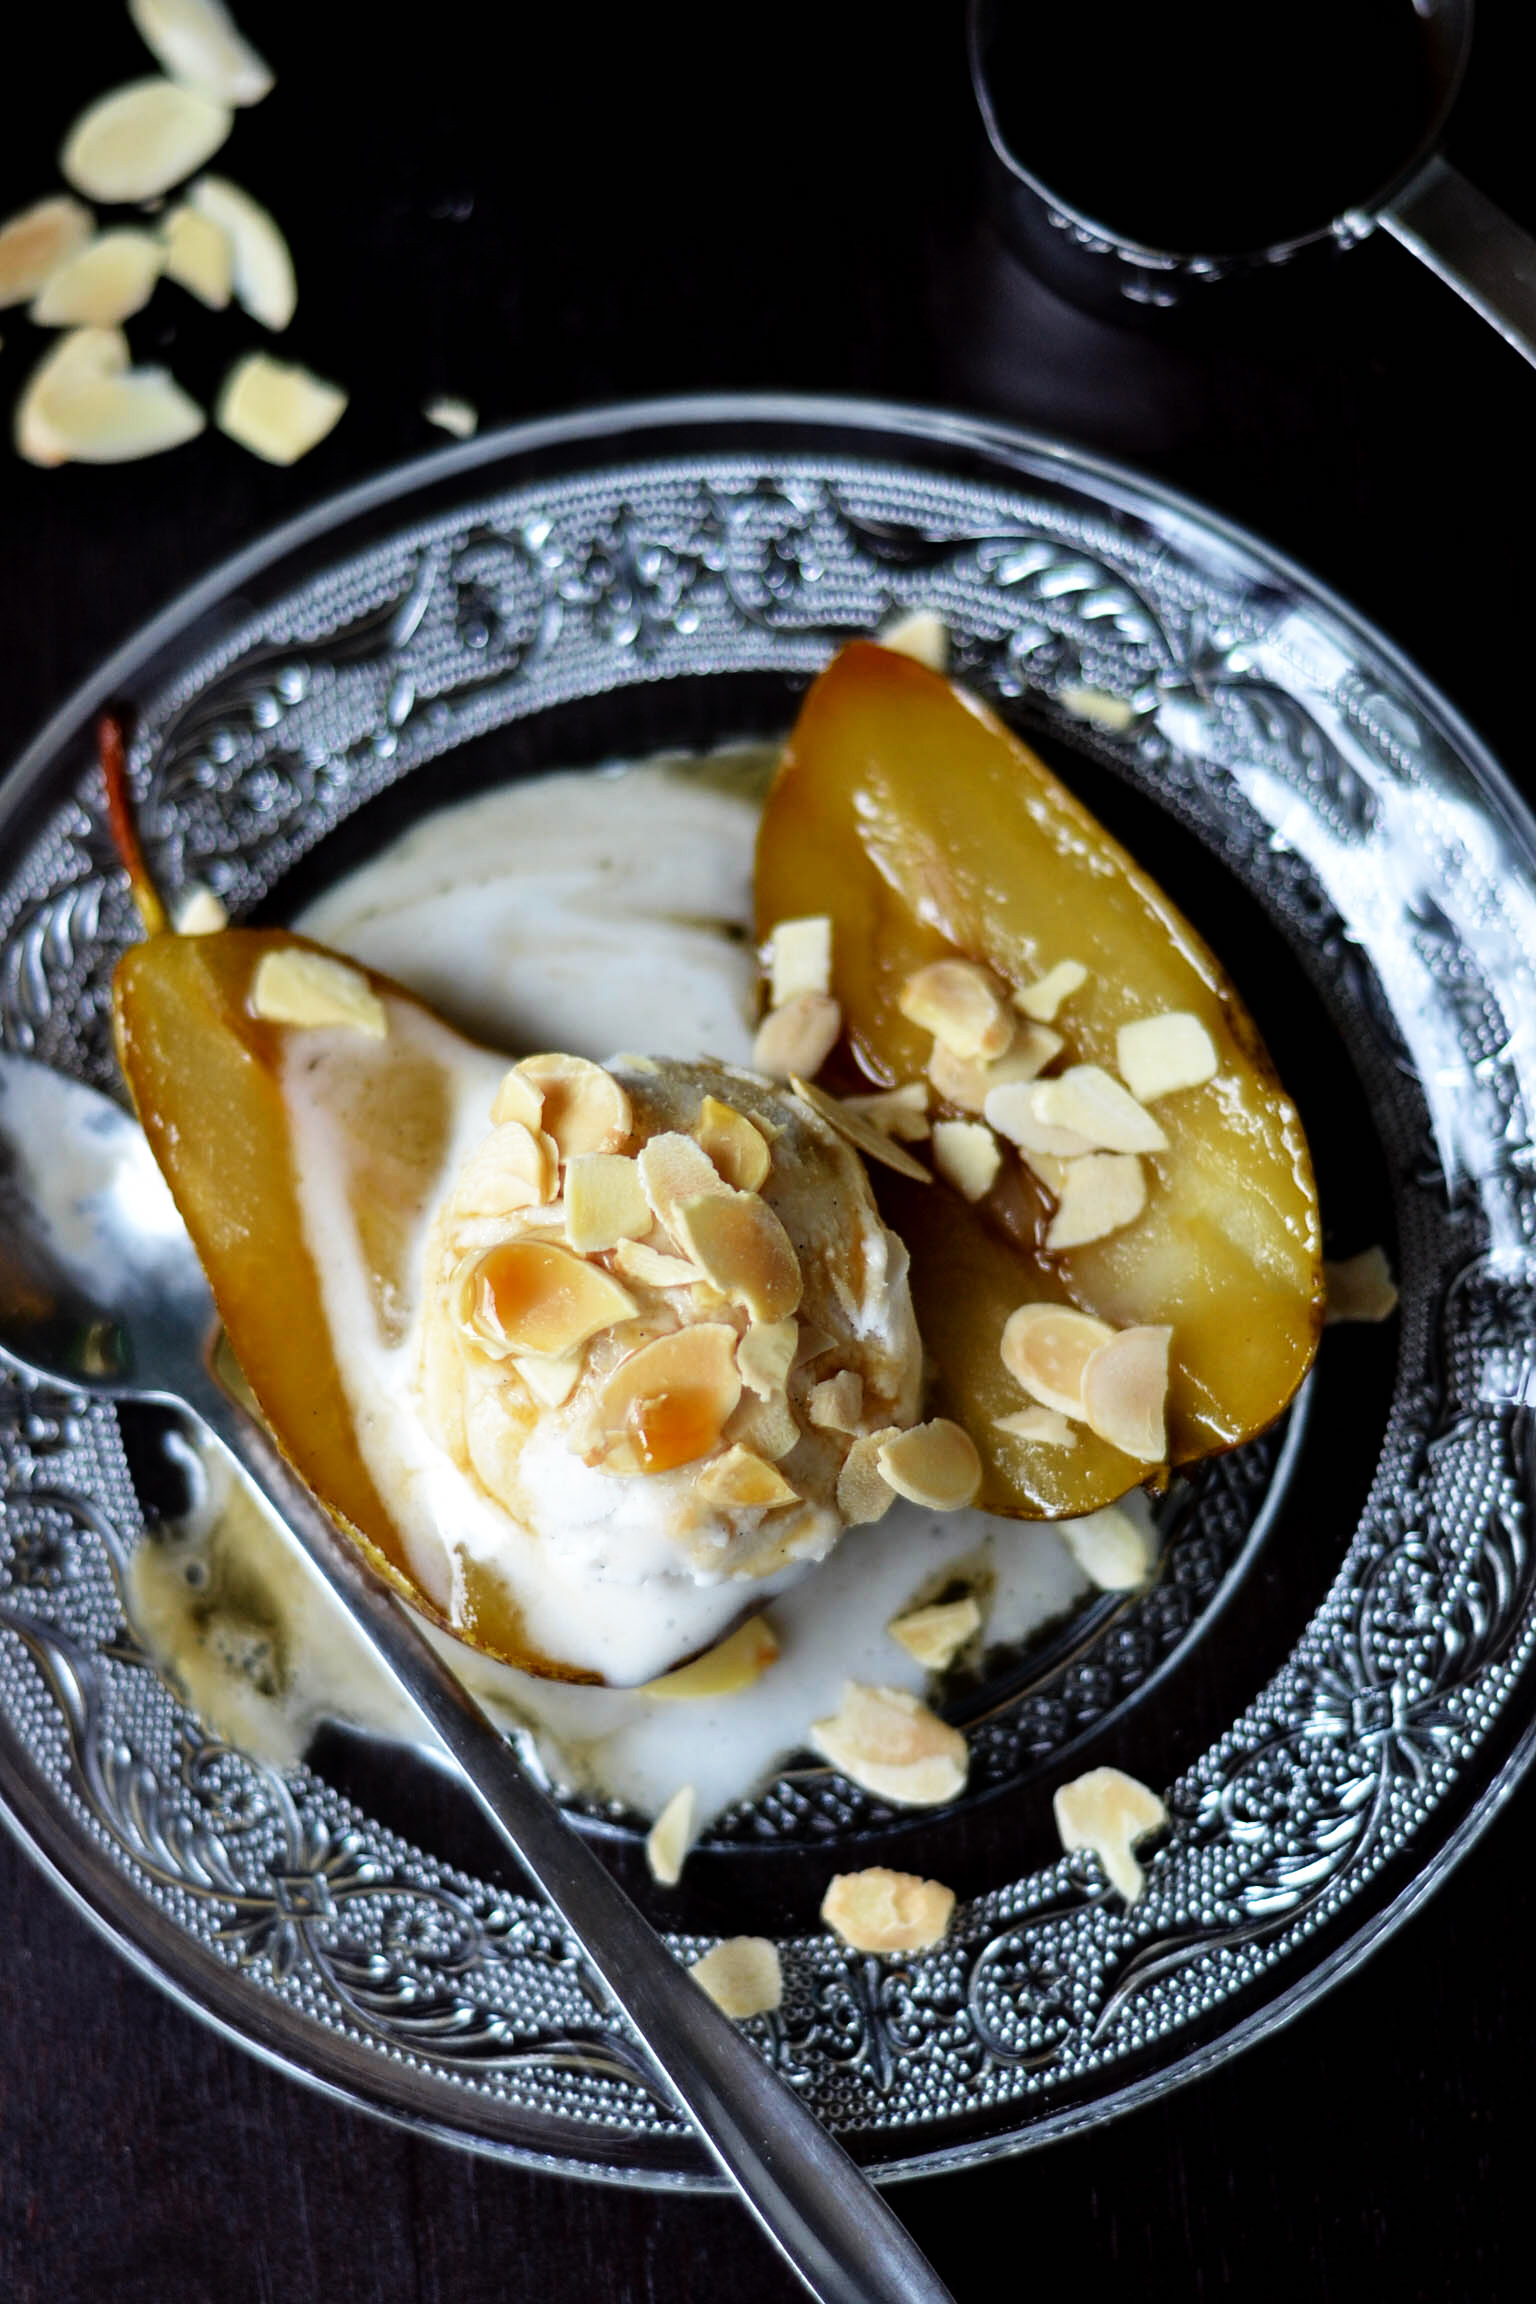 Grilled Pears with Amaretto & Ice Cream {Vegan & GF}